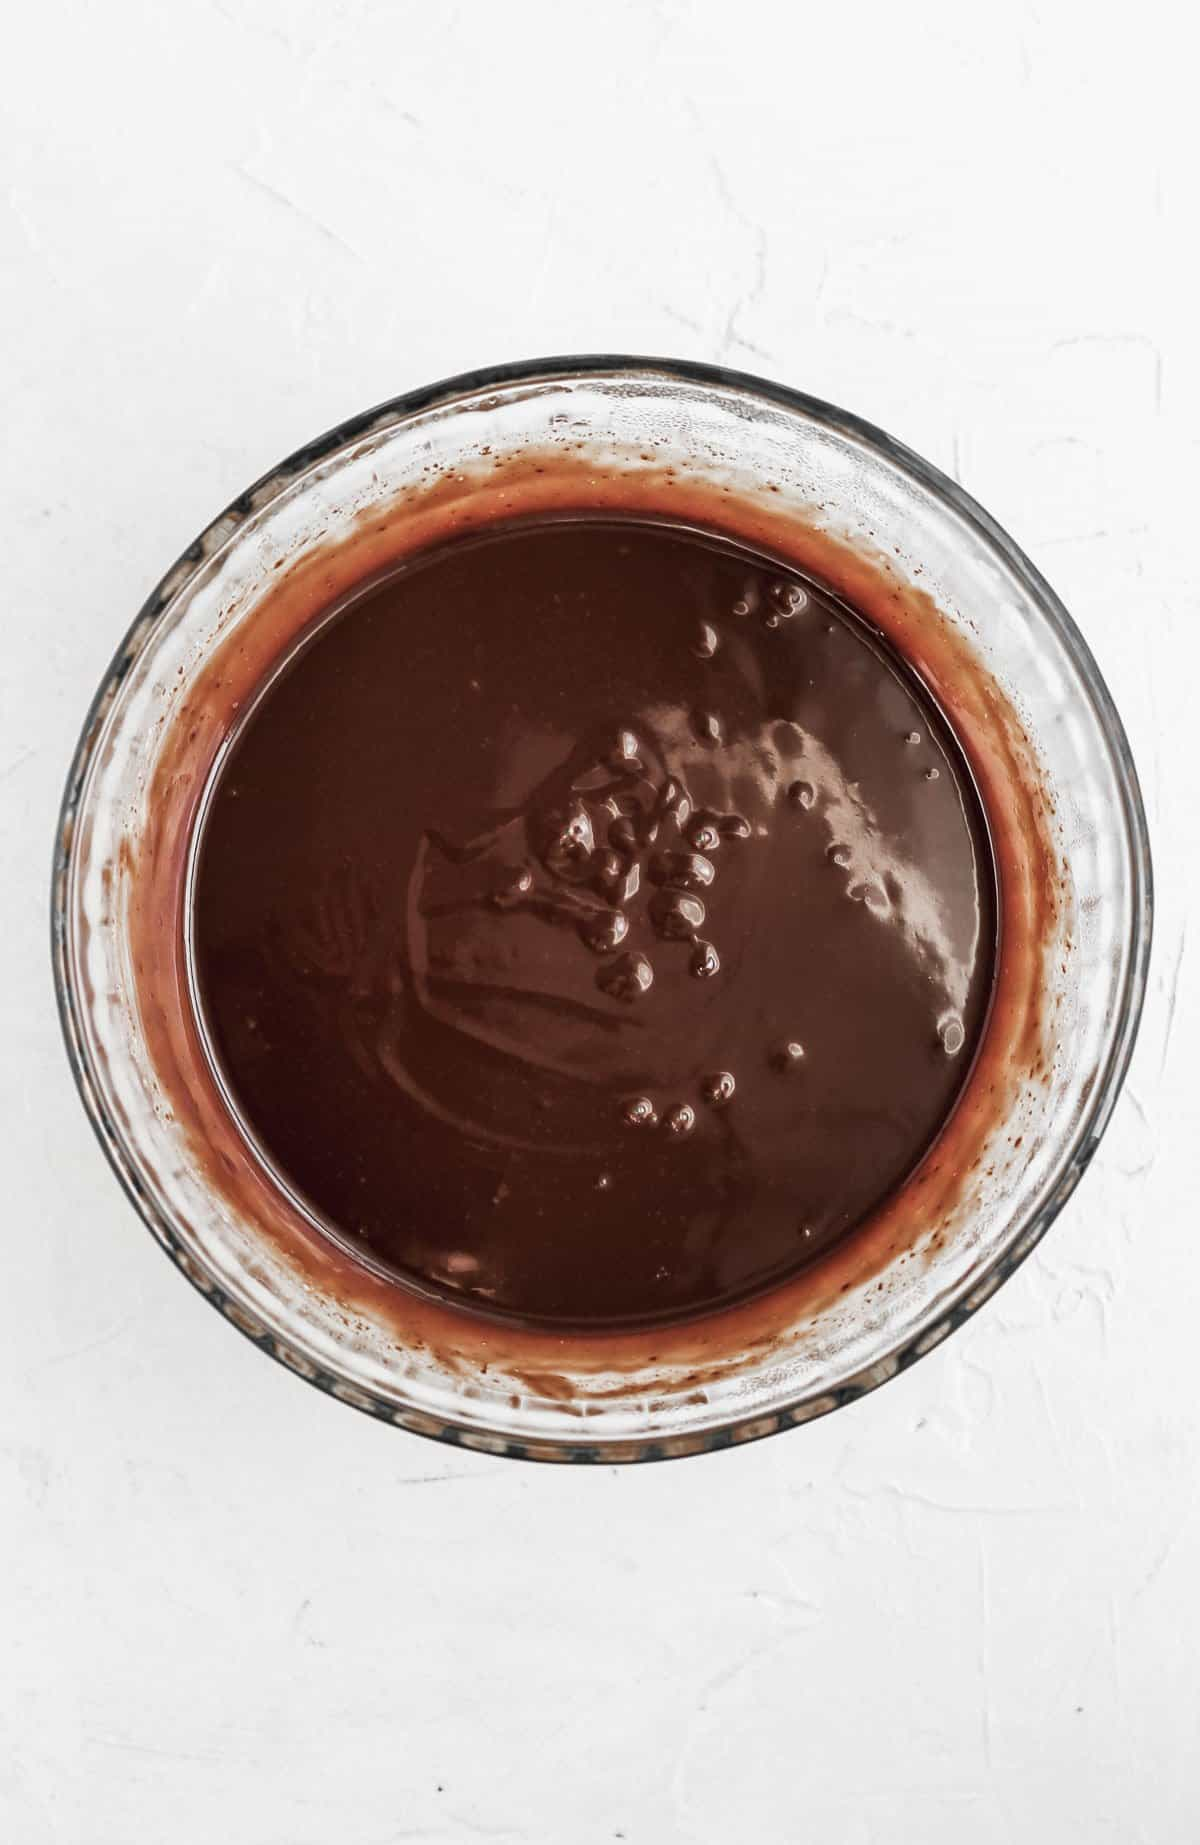 Smooth and shiny chocolate ganache in a glass bowl.